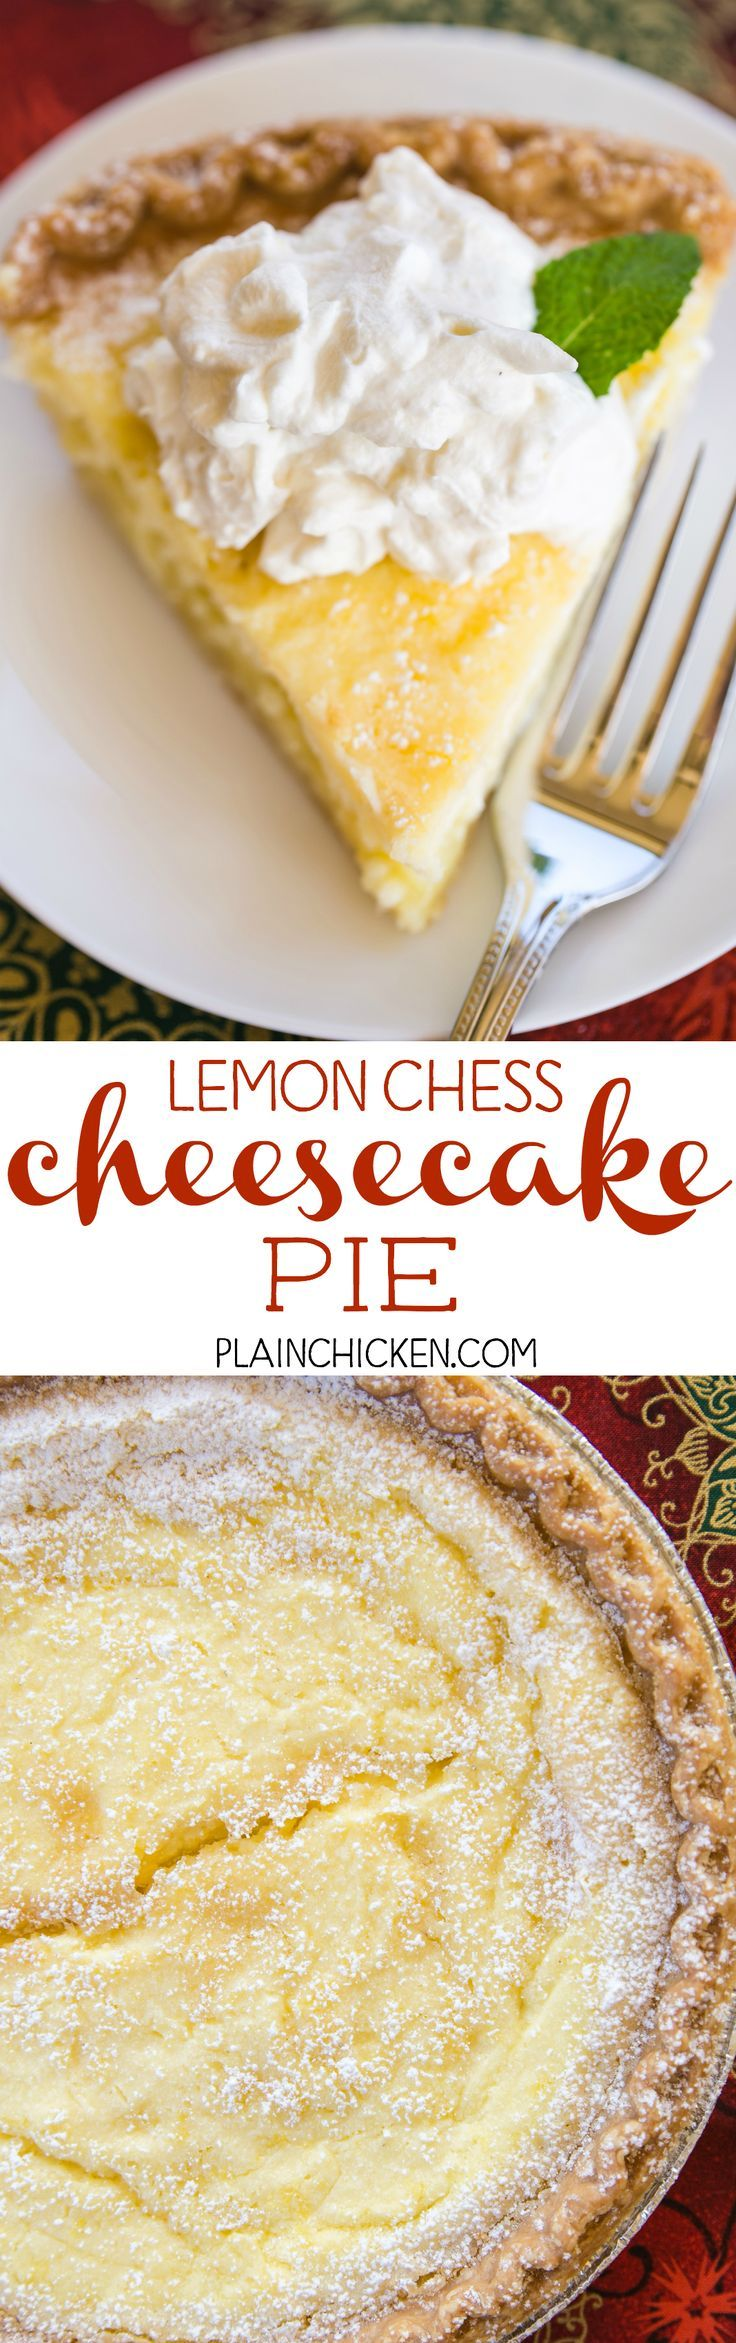 Lemon Chess Cheesecake Pie - two favorites in one dessert! Quick cheesecake layer on the bottom and a delicious homemade lemon chess pie on top!